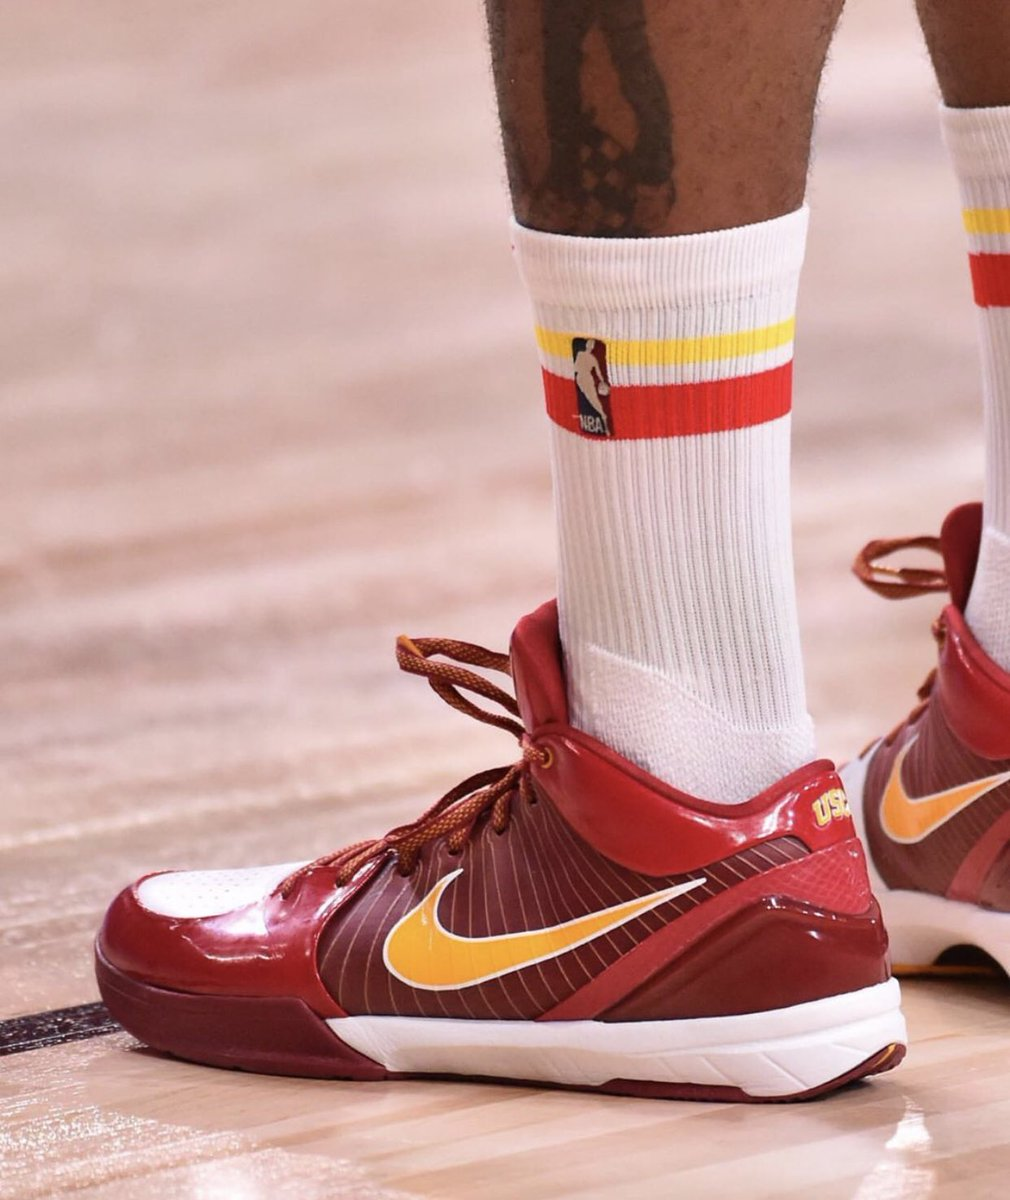 The USC Kobe 4s snuck into the NBA bubble as Texas alum PJ Tucker decided to rock them. Everyone wants to be a Trojan. https://t.co/McuH7BimdN